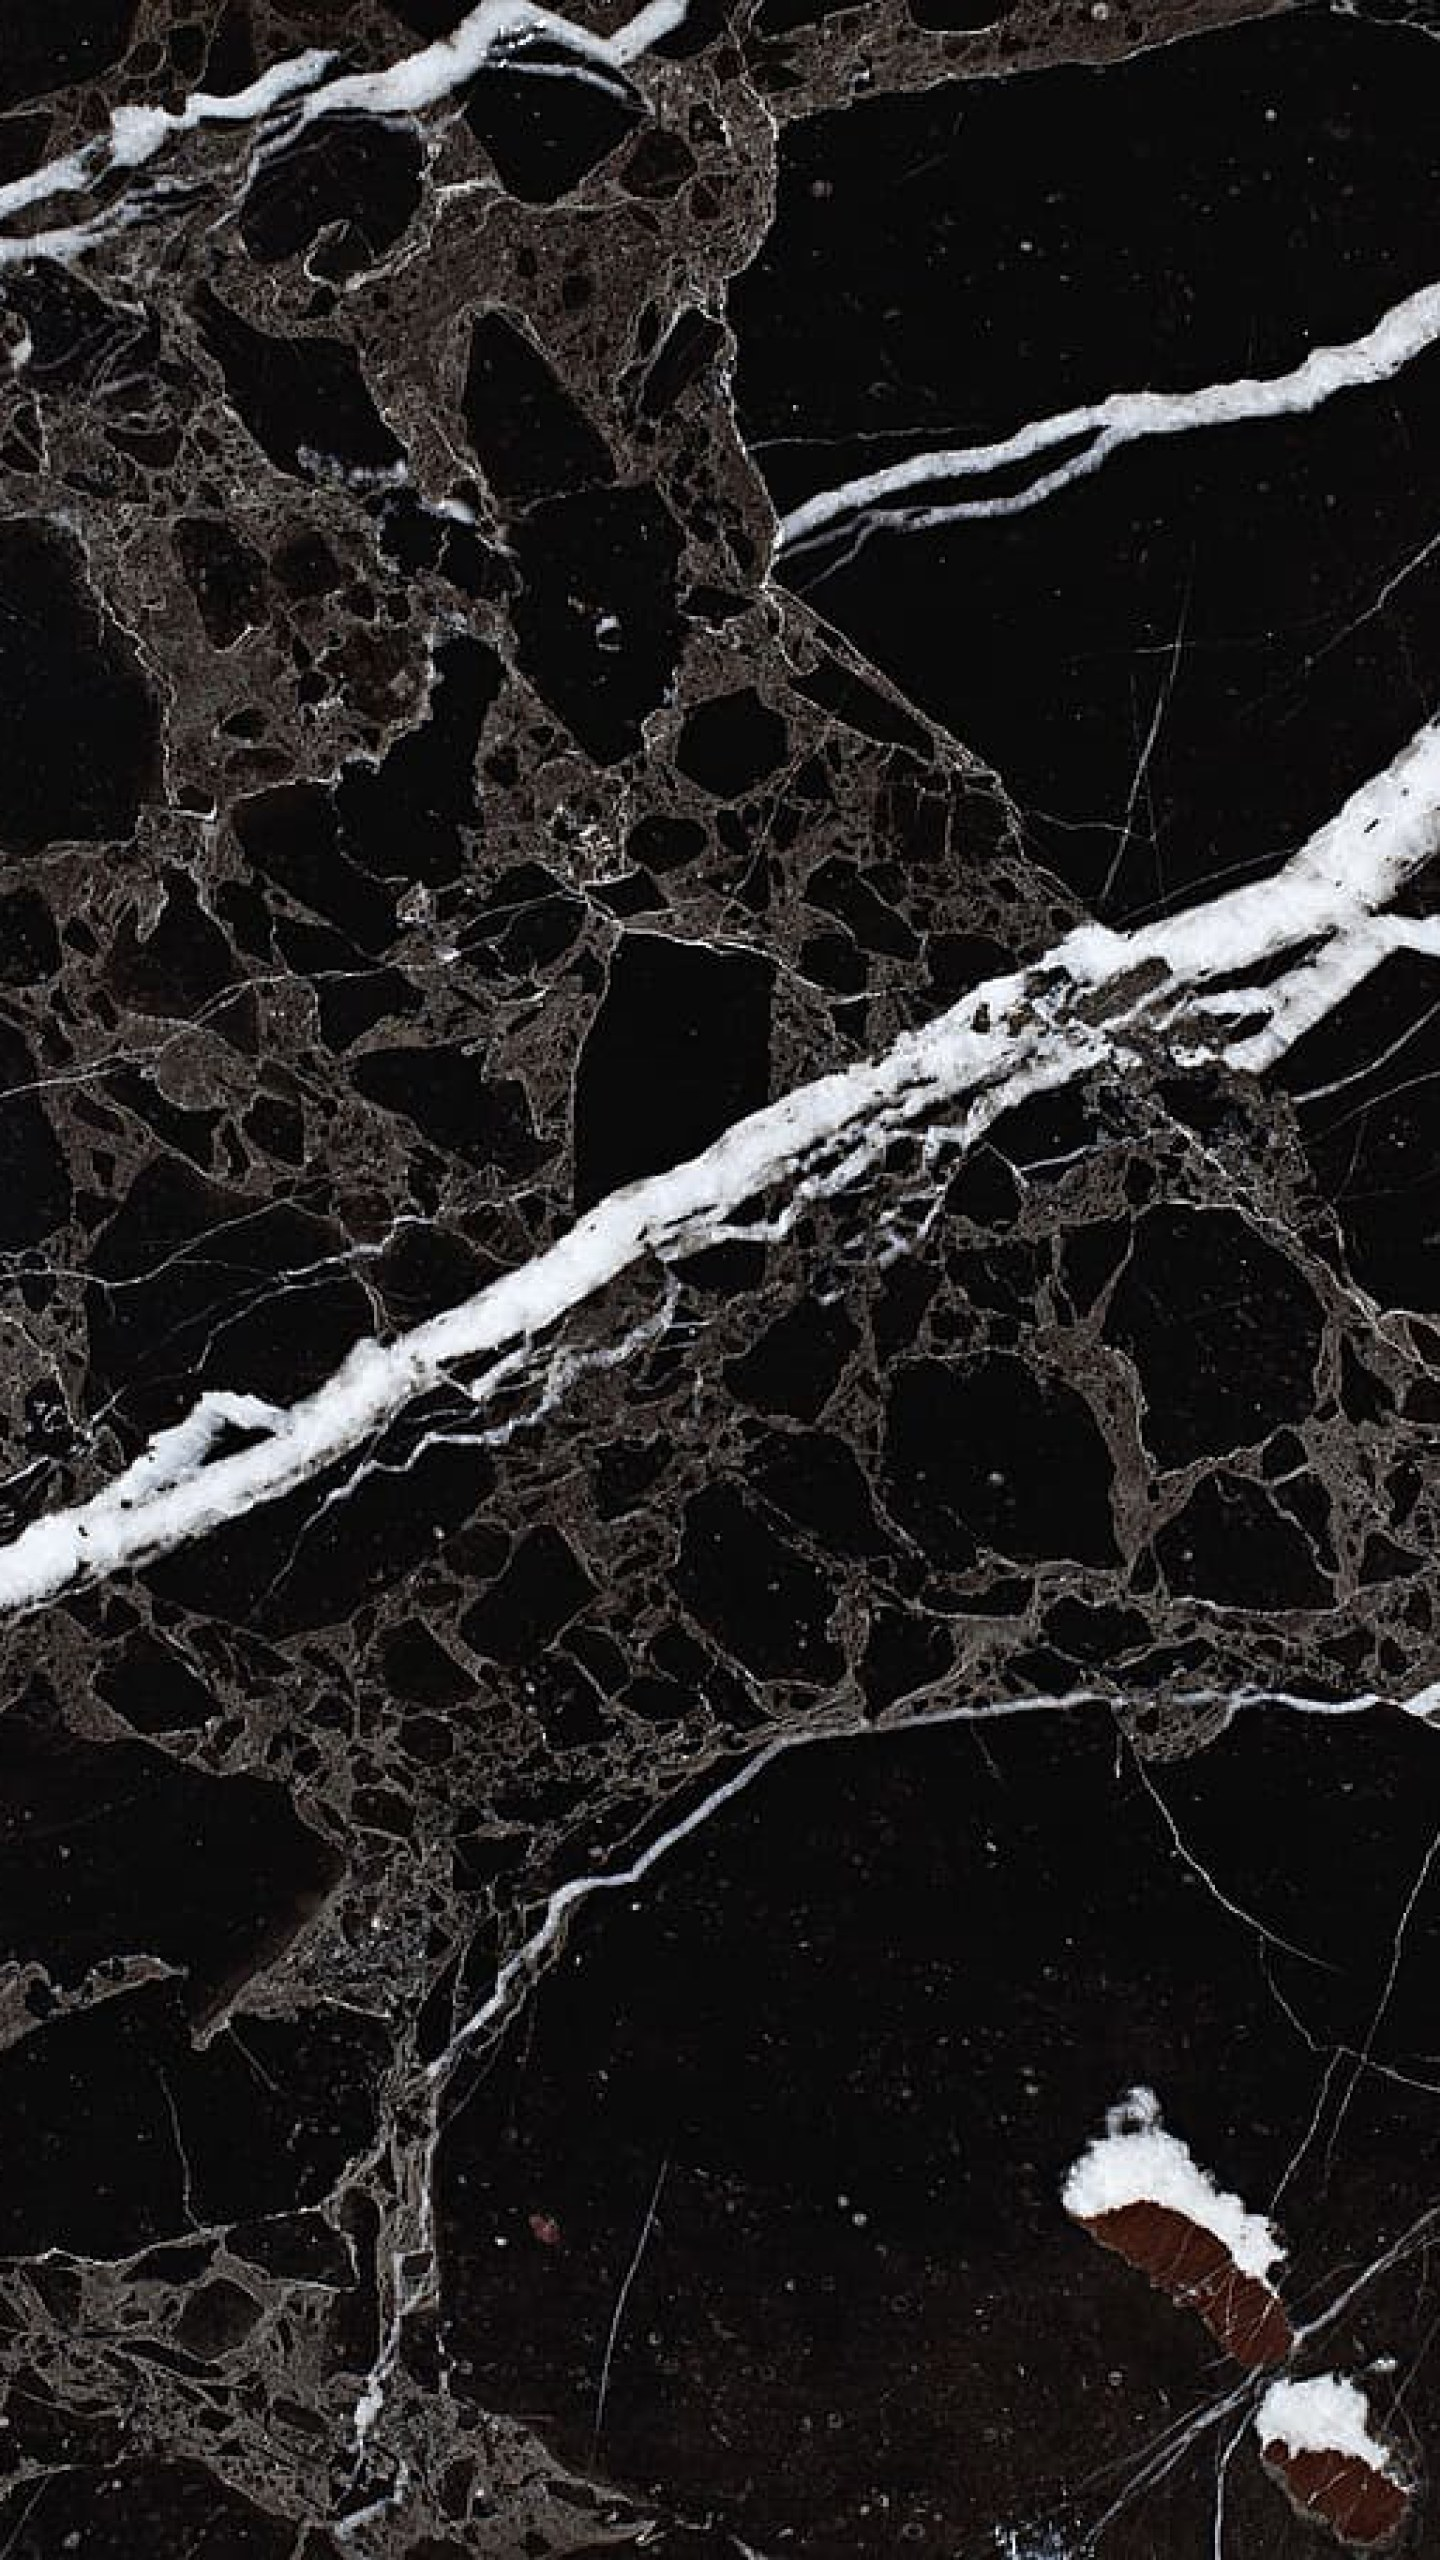 Marble Wallpaper Black Marble Wallpaper Wallpaper For You The Best Hd Wallpaper For Desktop Mobile